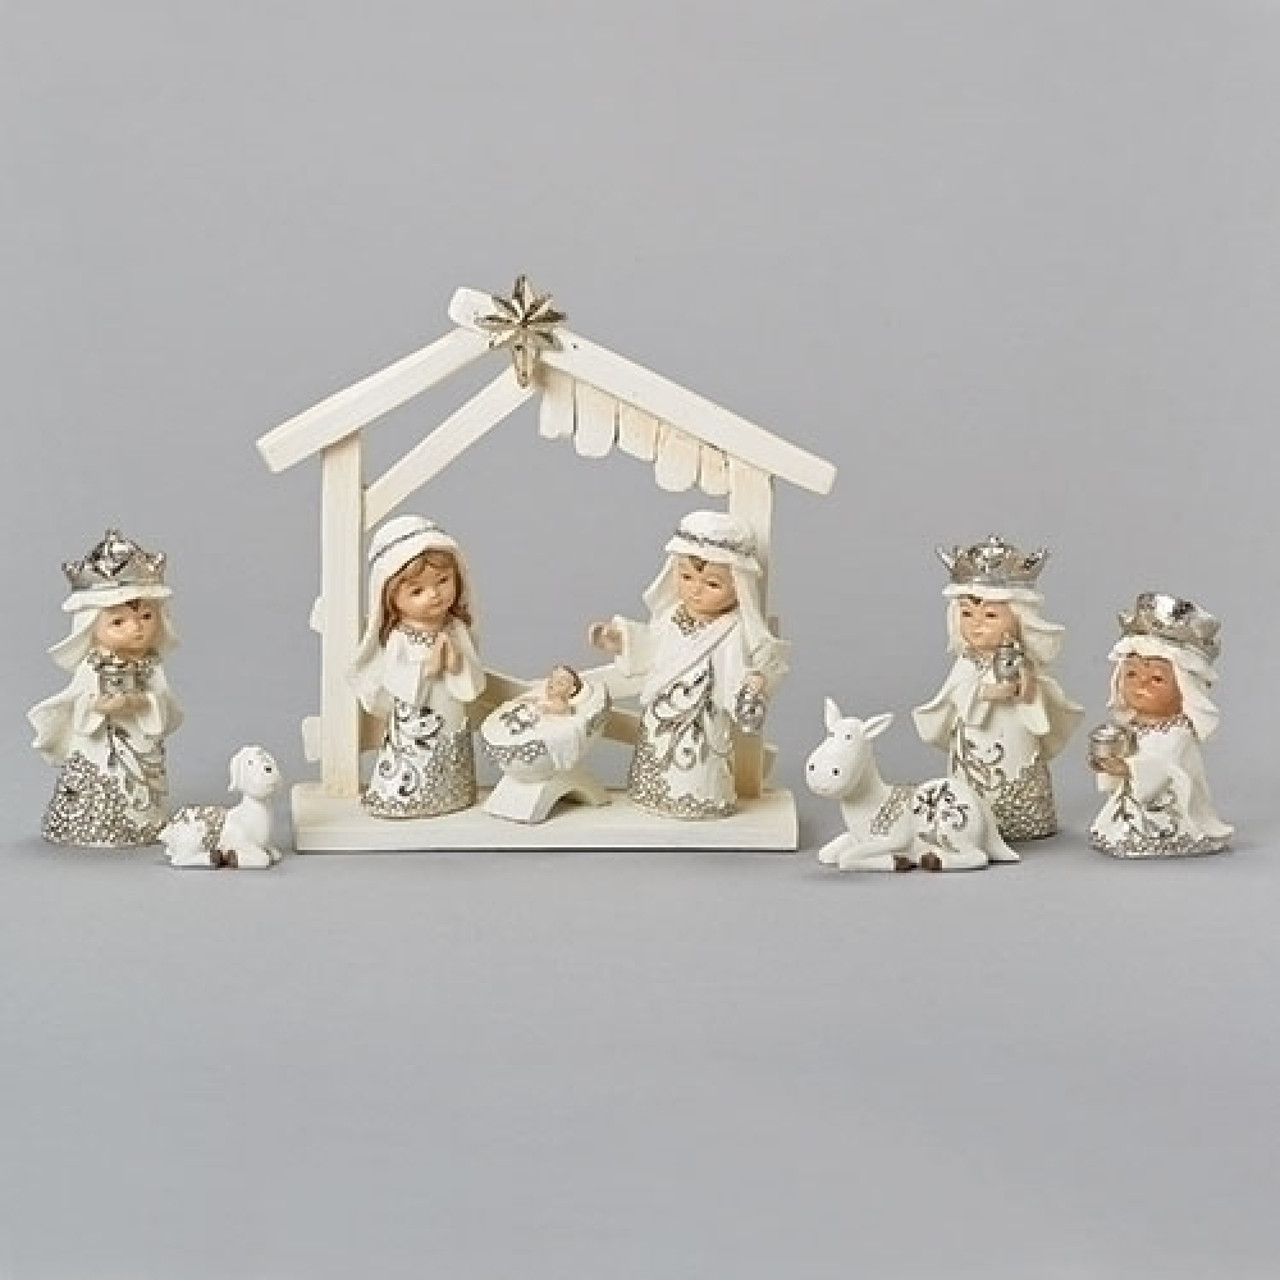 9 Piece Set White Christmas Nativity Stable Scene Figurines 6 5 Christmas Central